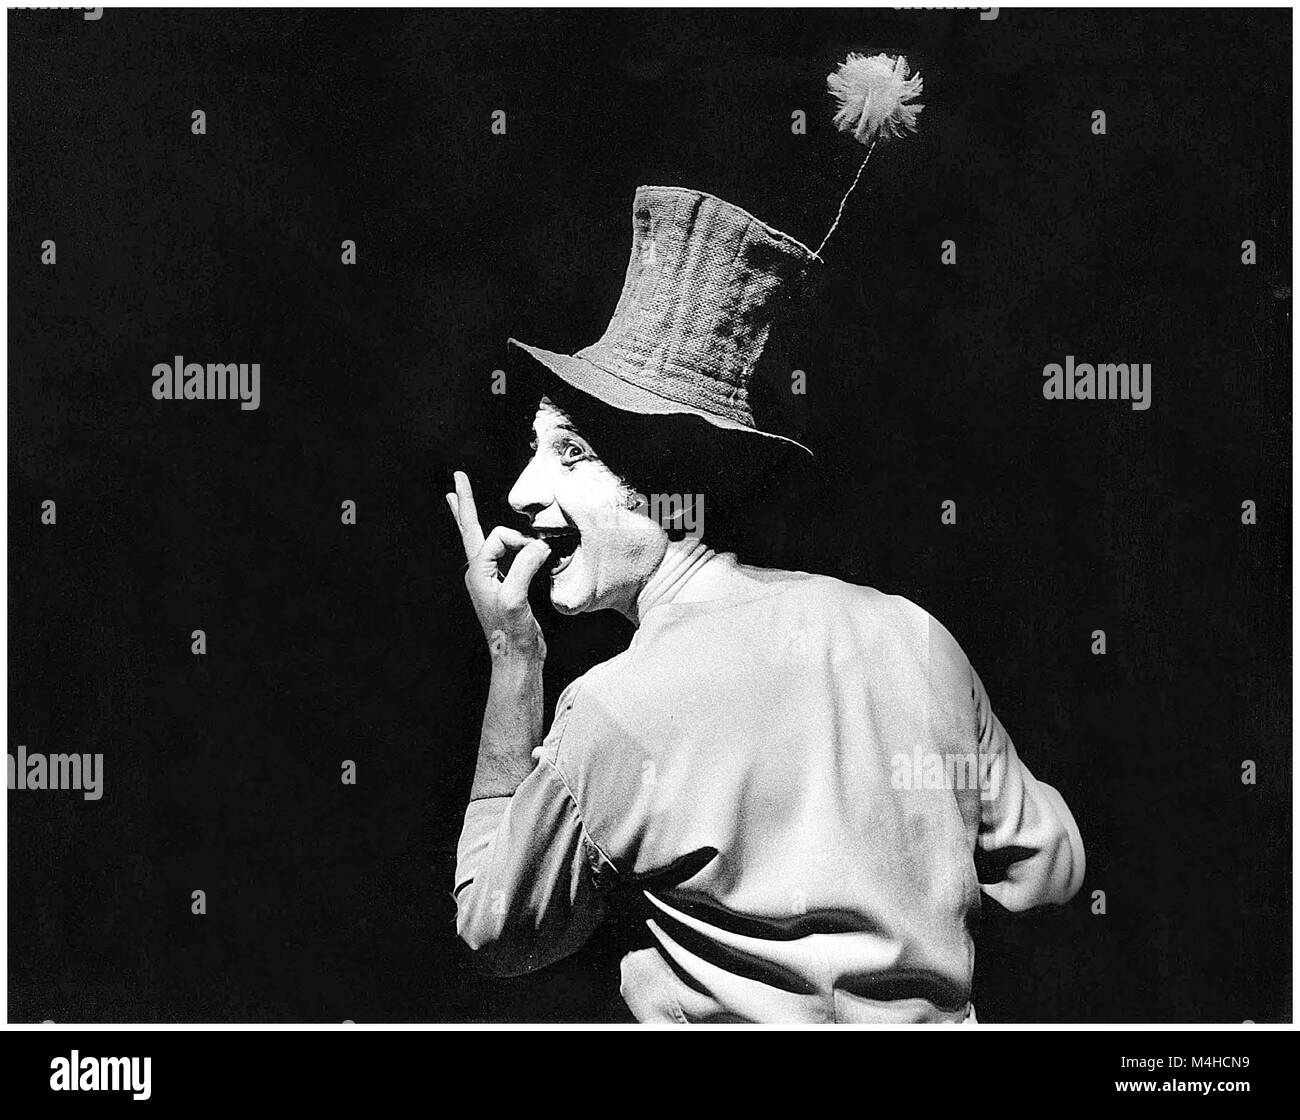 The pantomime Marcel Marceau during a performance in Regensburg. - Stock Image